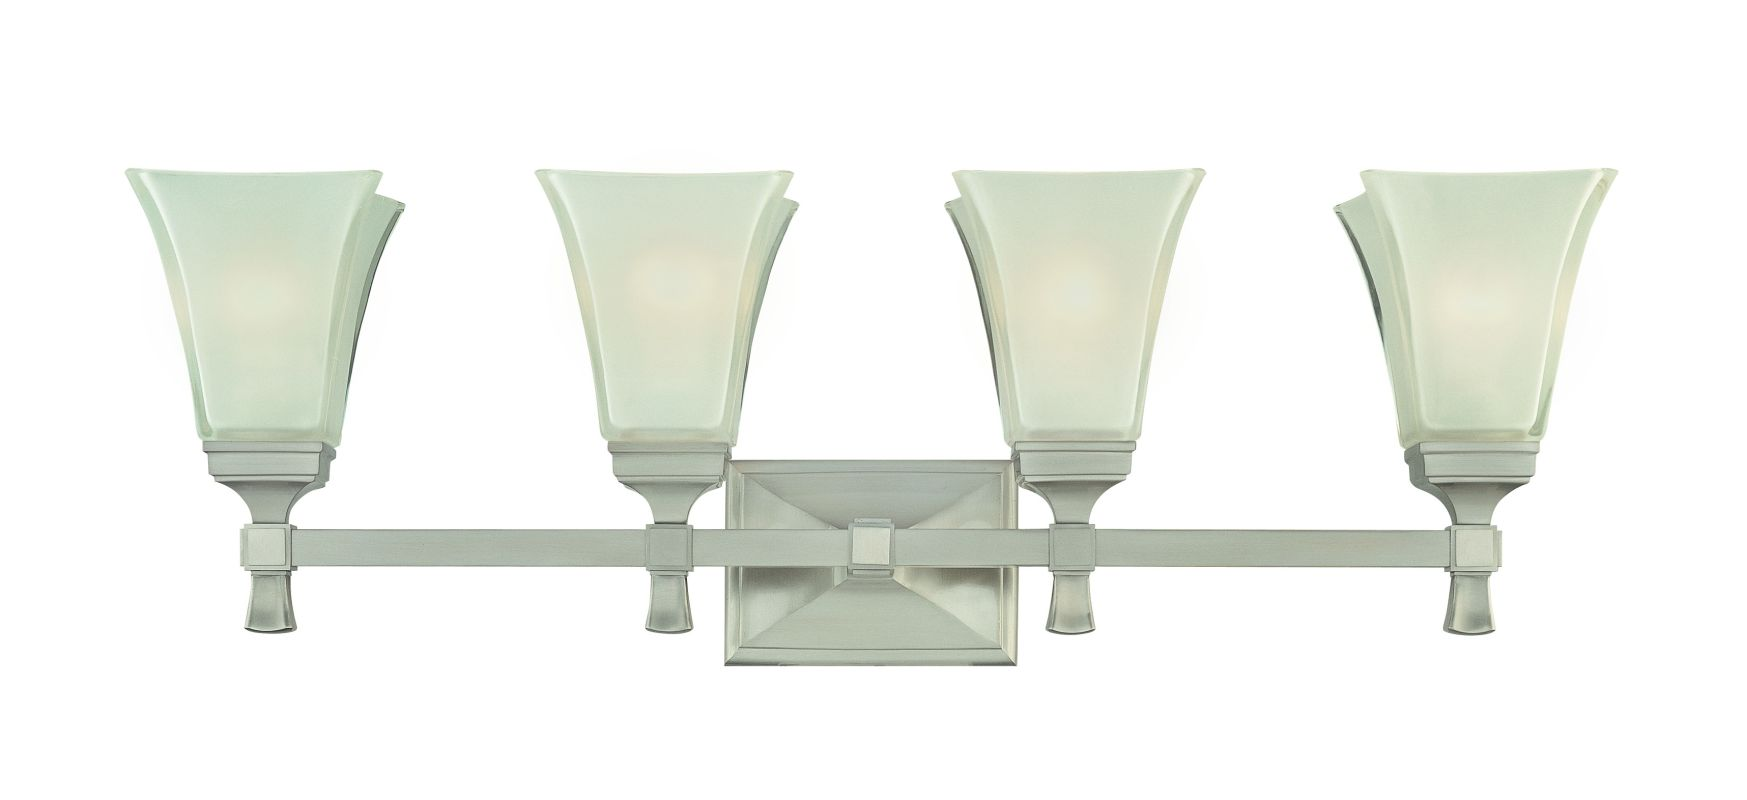 Hudson Valley Lighting 1174 Four Light Wall Sconce from the Kirkland